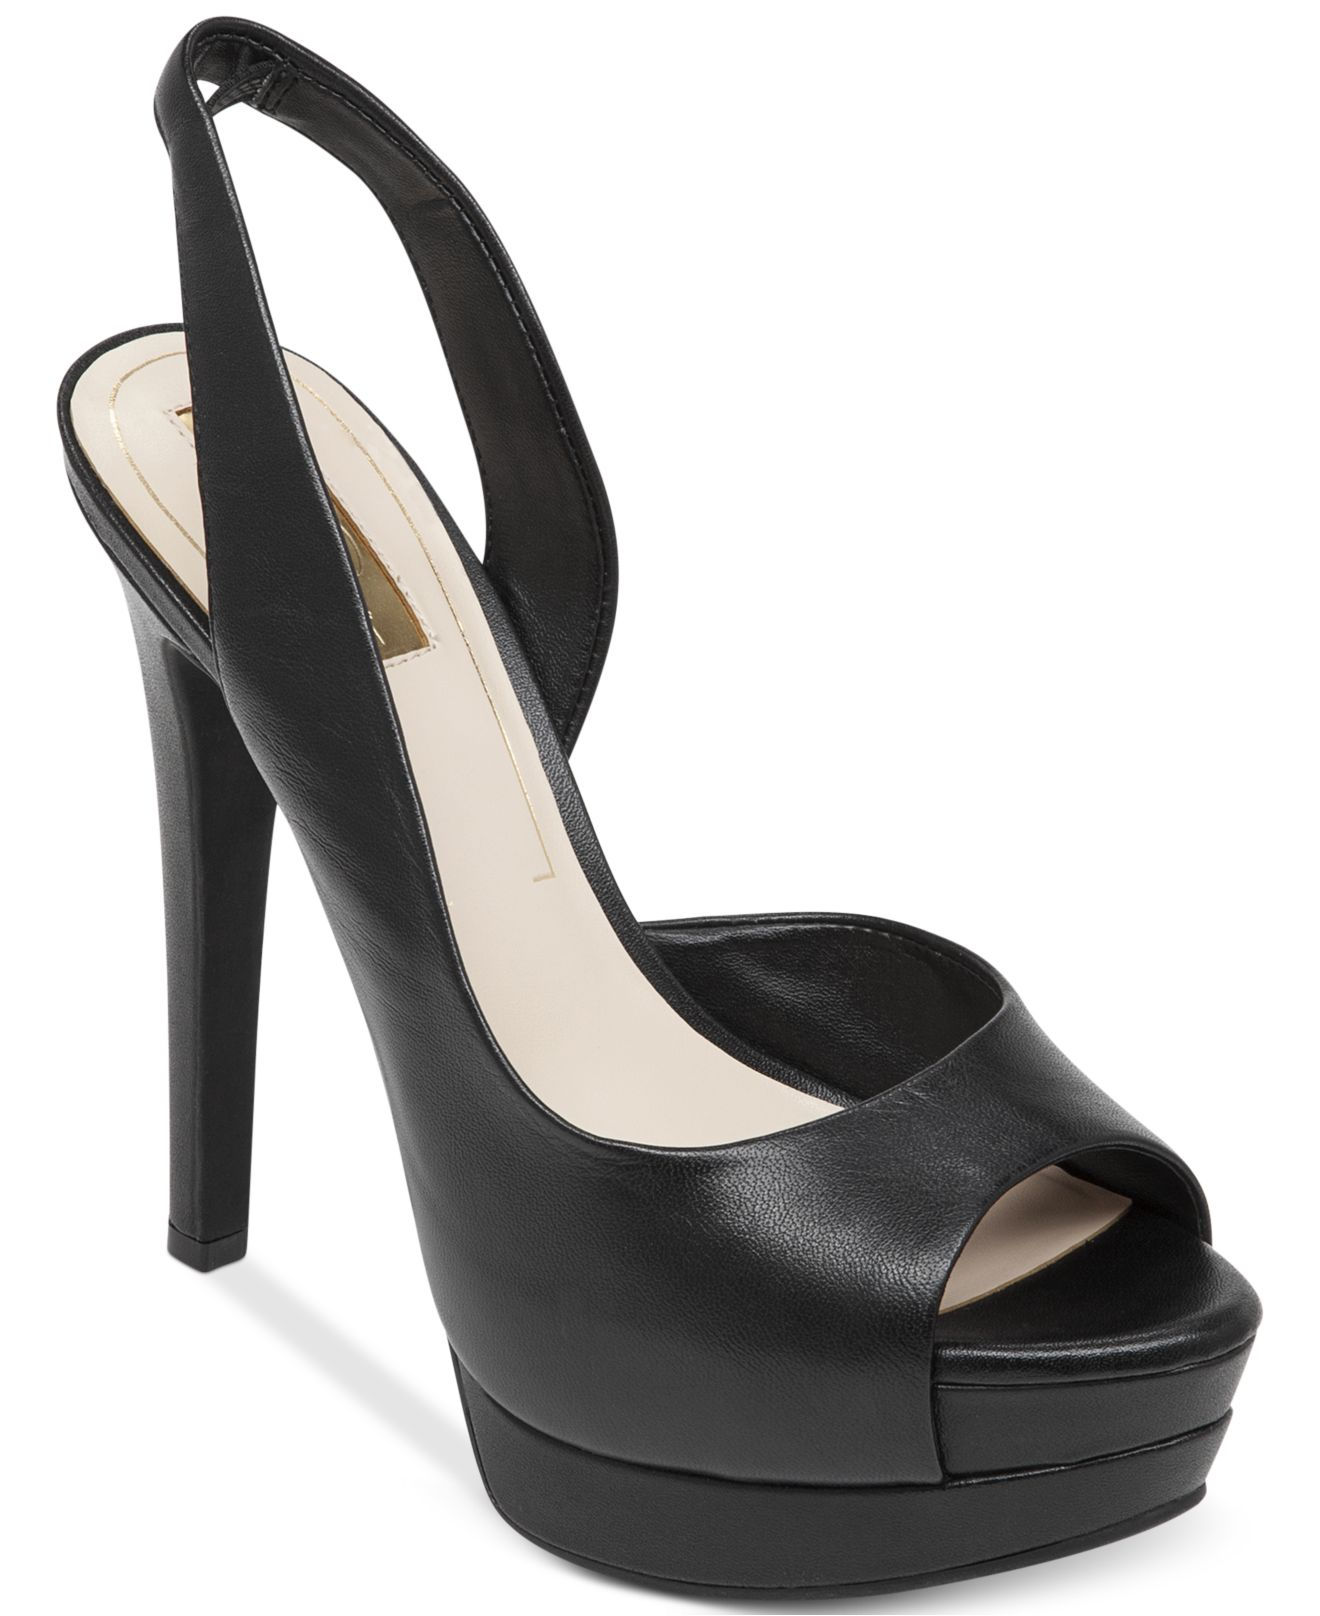 Black Platform Pumps with FREE Shipping & Exchanges, and a % price guarantee. Choose from a huge selection of Black Platform Pumps styles.